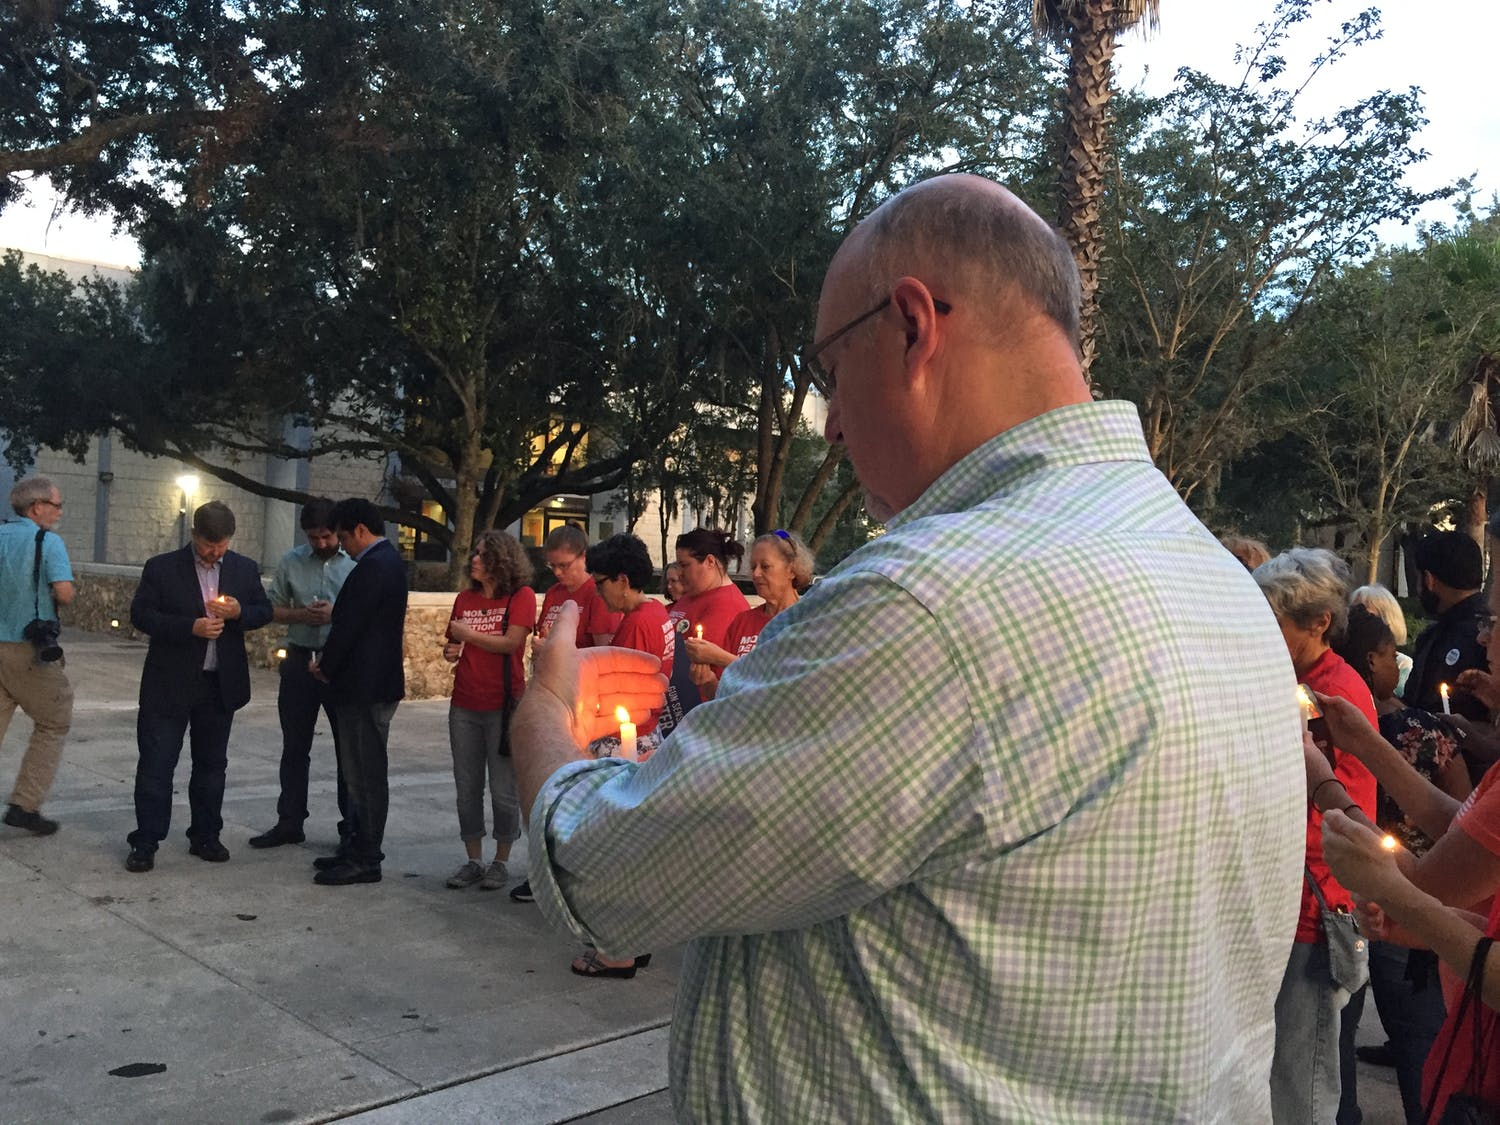 About 50 Gainesville residents and elected officials gathered to honor the victims of Sunday's mass shooting in Jacksonville